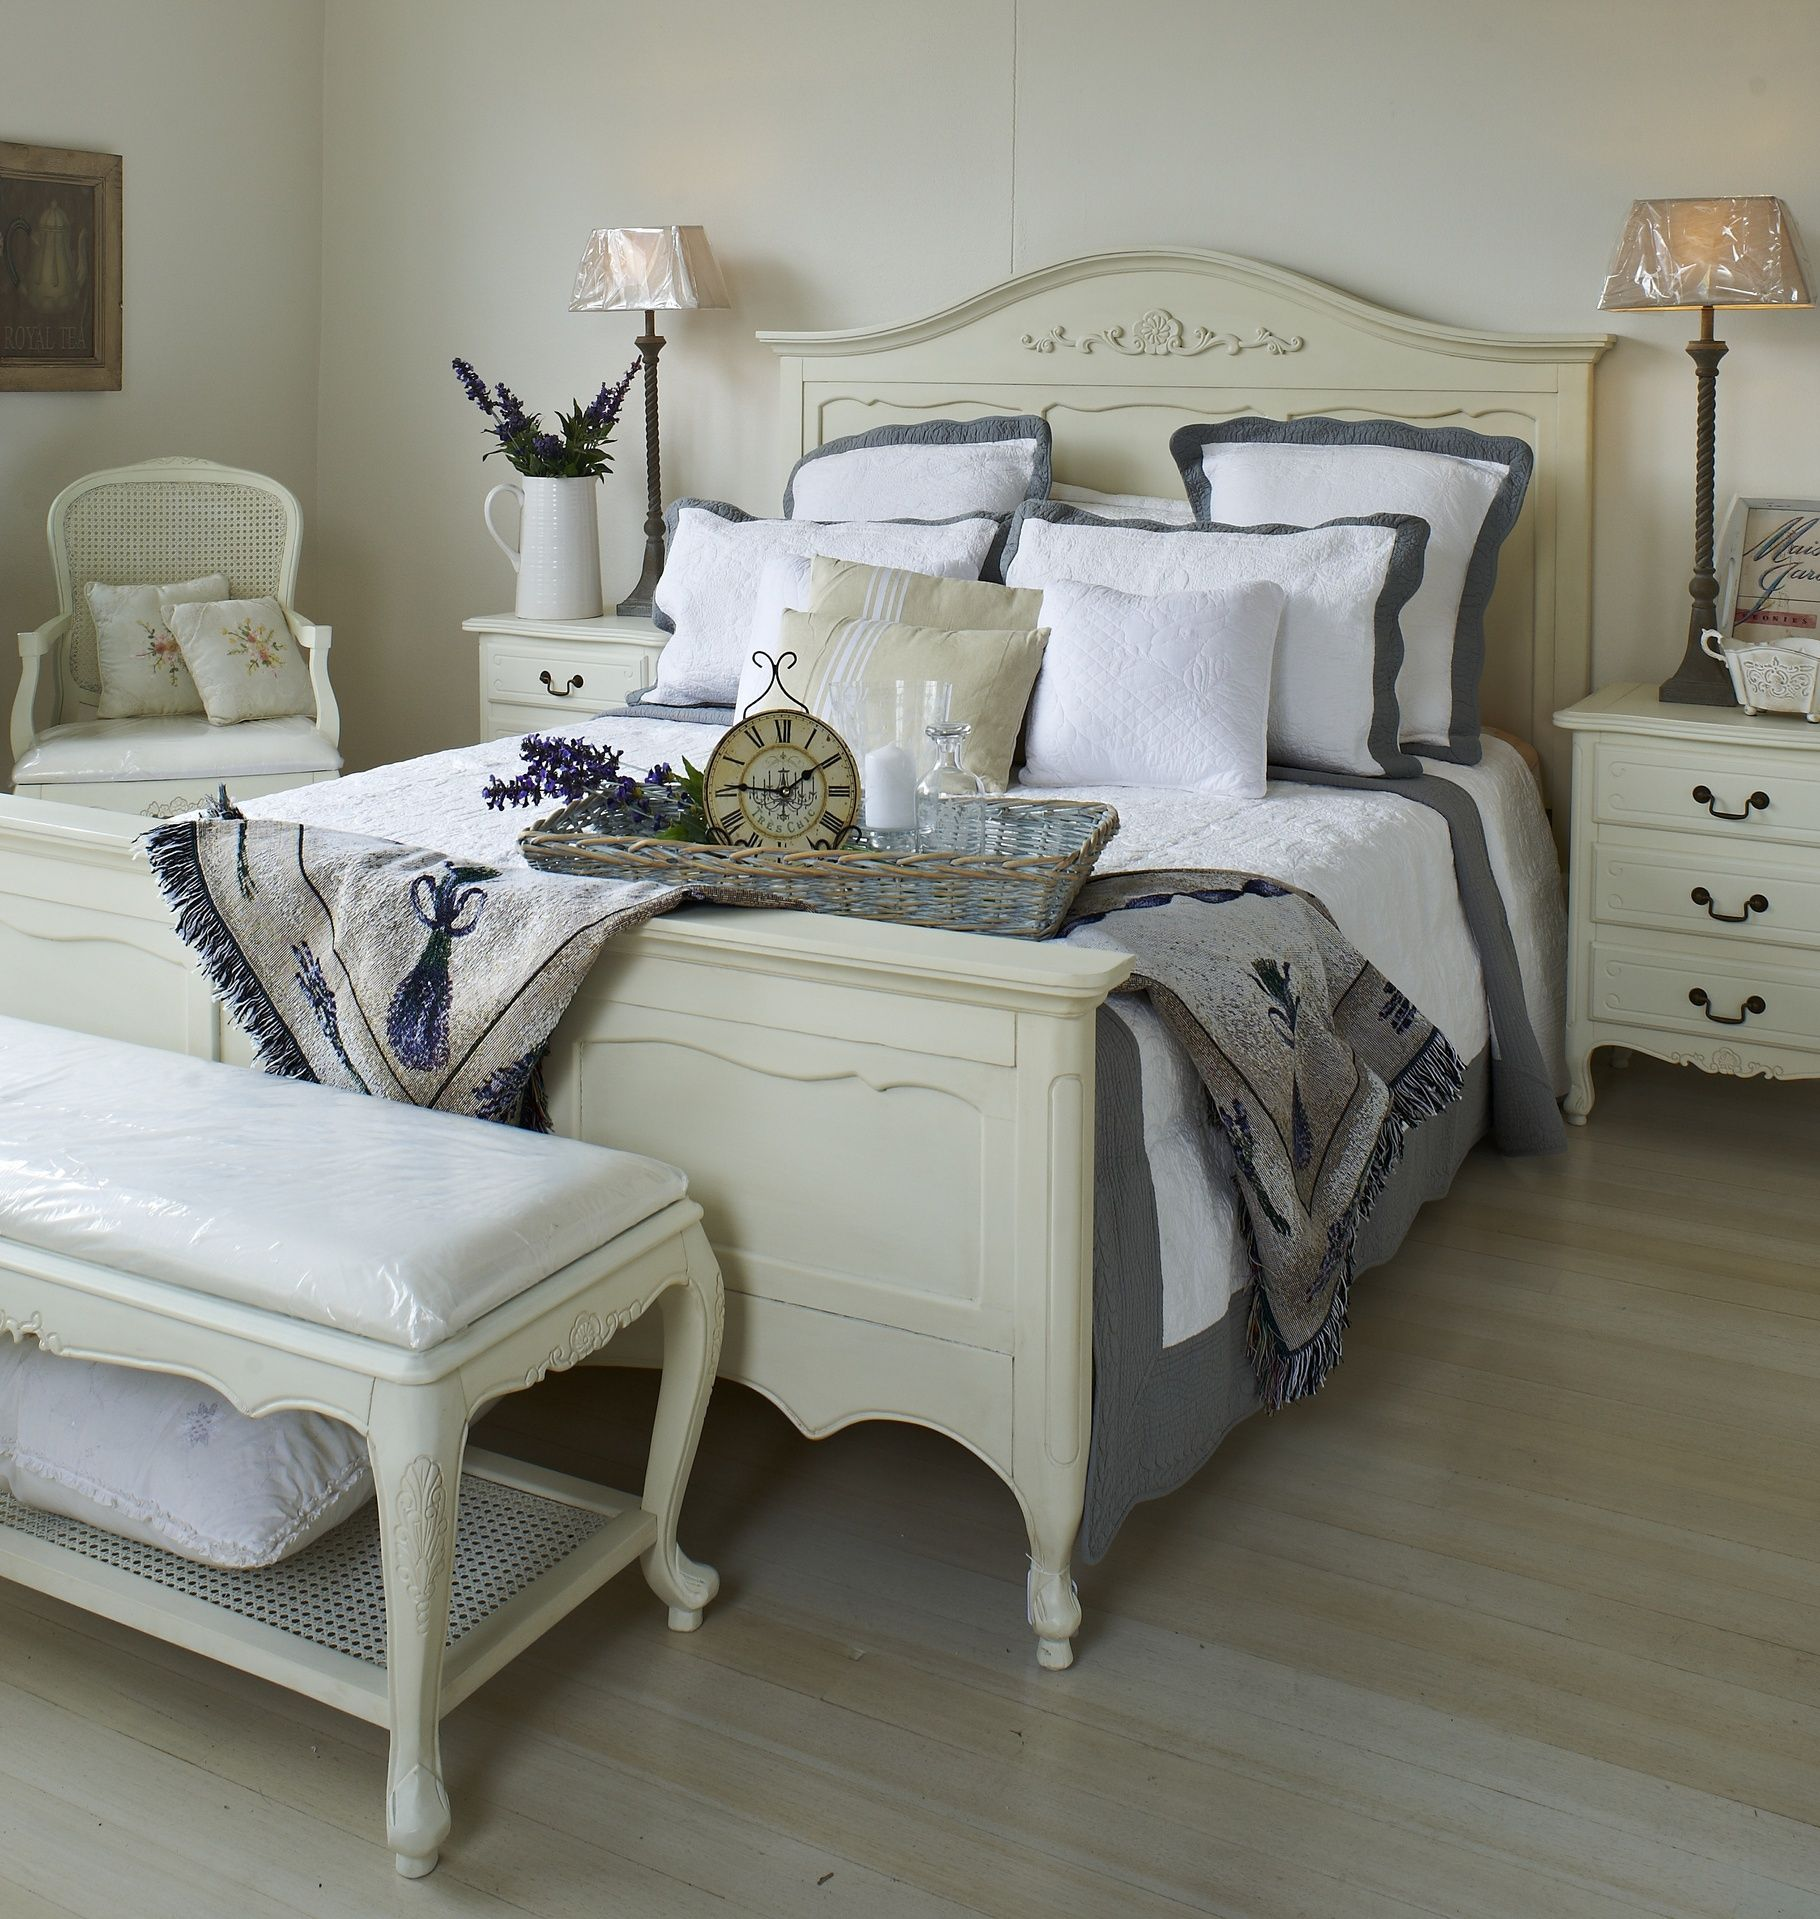 Image result for french provincial bed king | For the home ...